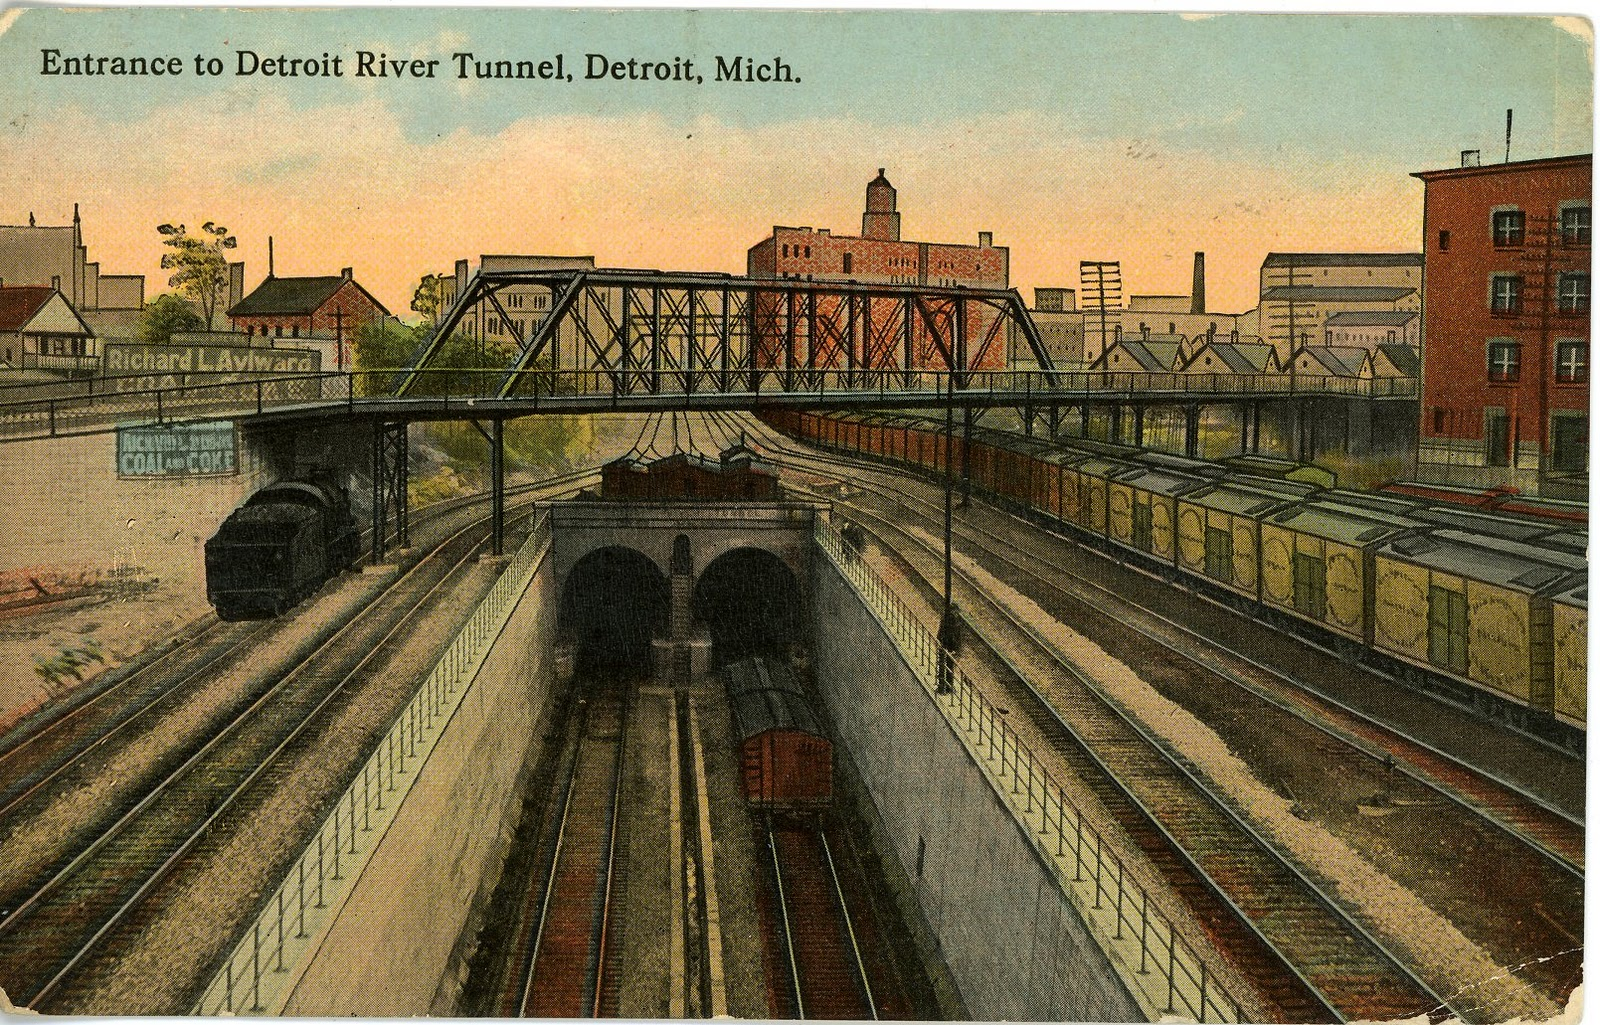 For More Information On The Detroit River Tunnel Click Here